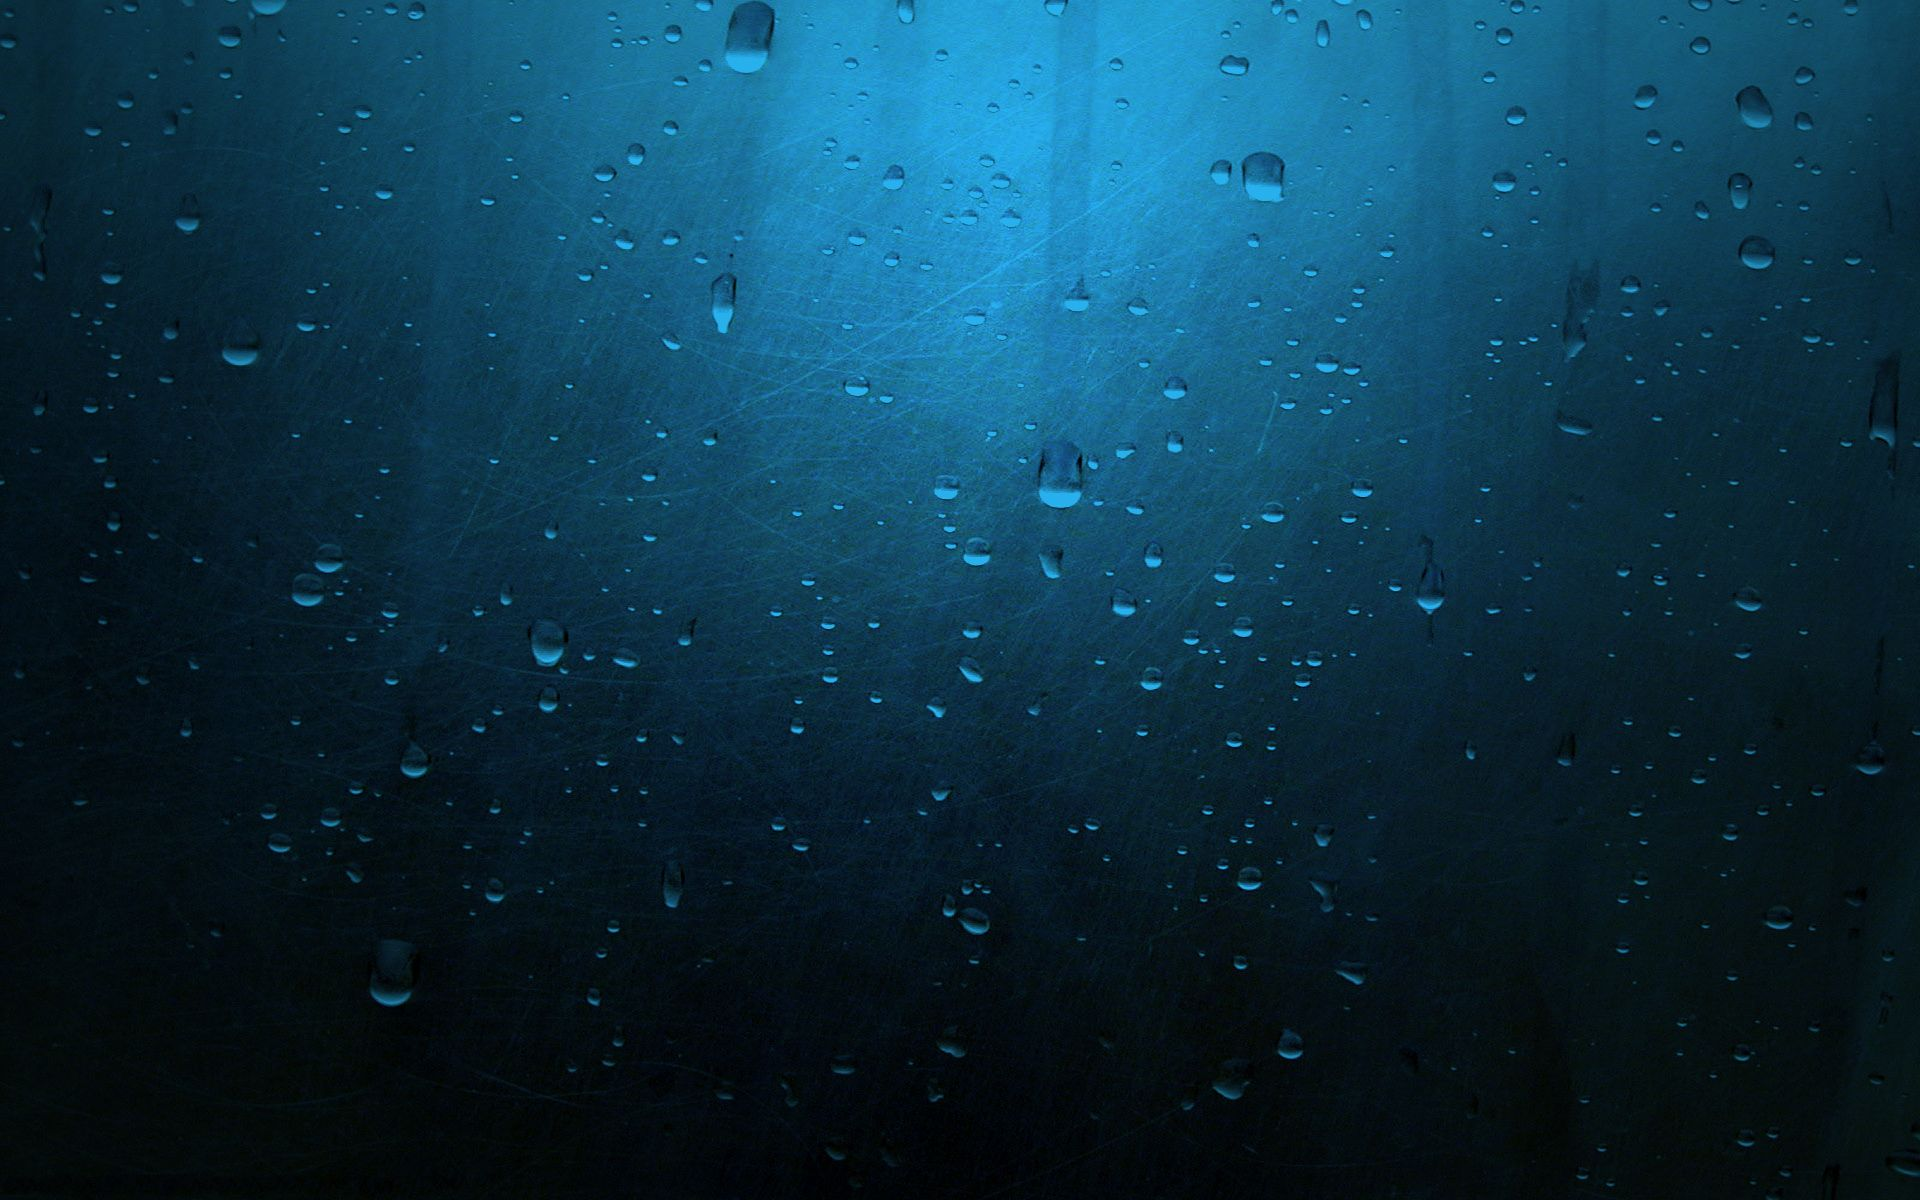 Water Drops On Glass Wallpapers | HD Wallpapers